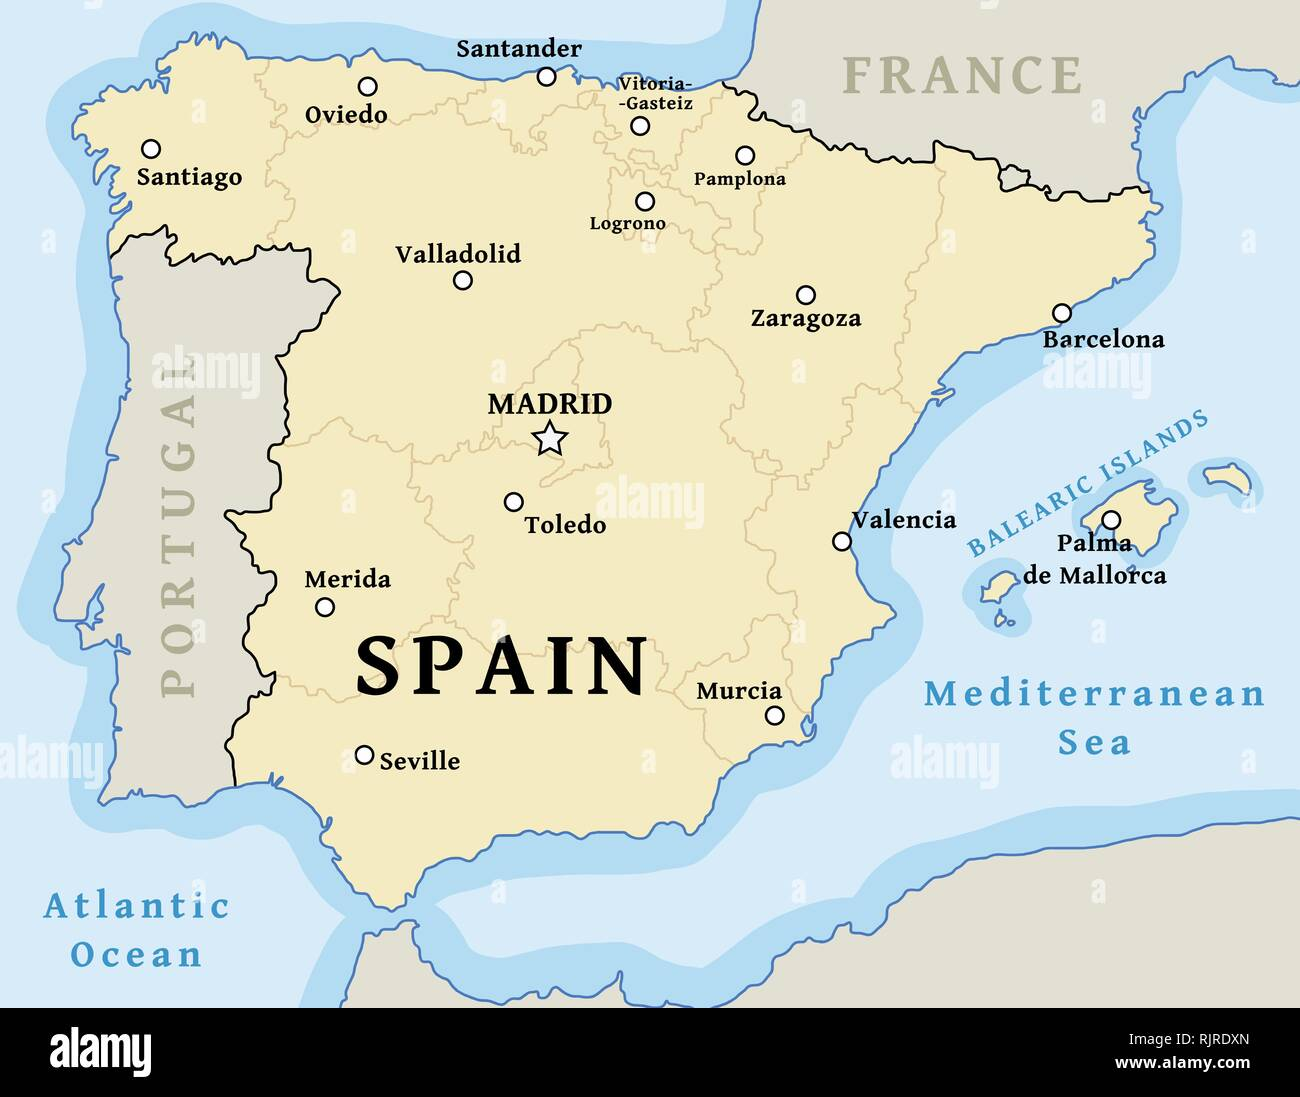 Map of Spain - vector illustration with cities and provinces. Stock Vector